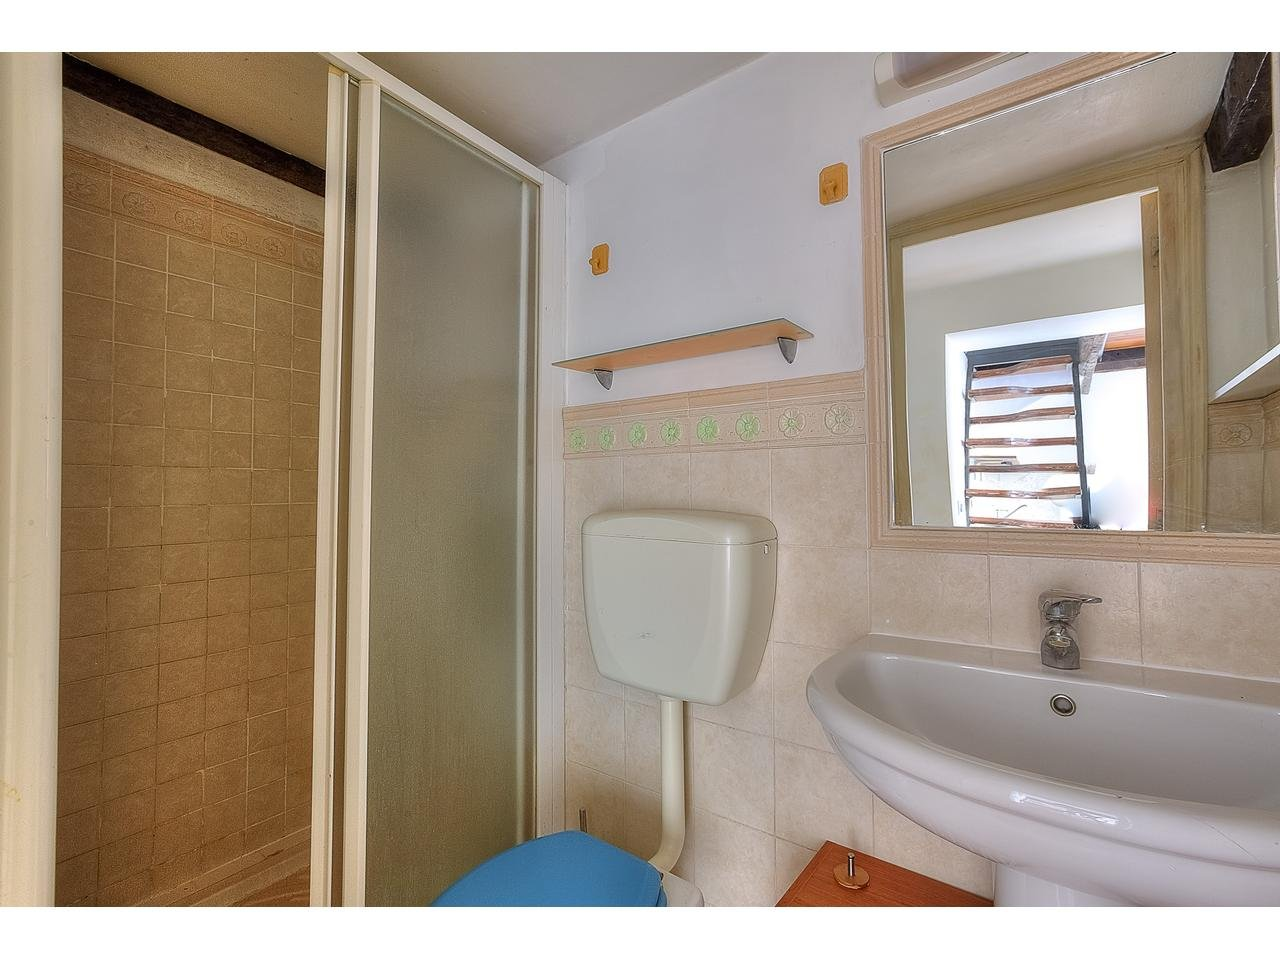 Appartement  1 Rooms 18.44m2  for sale   150000 €